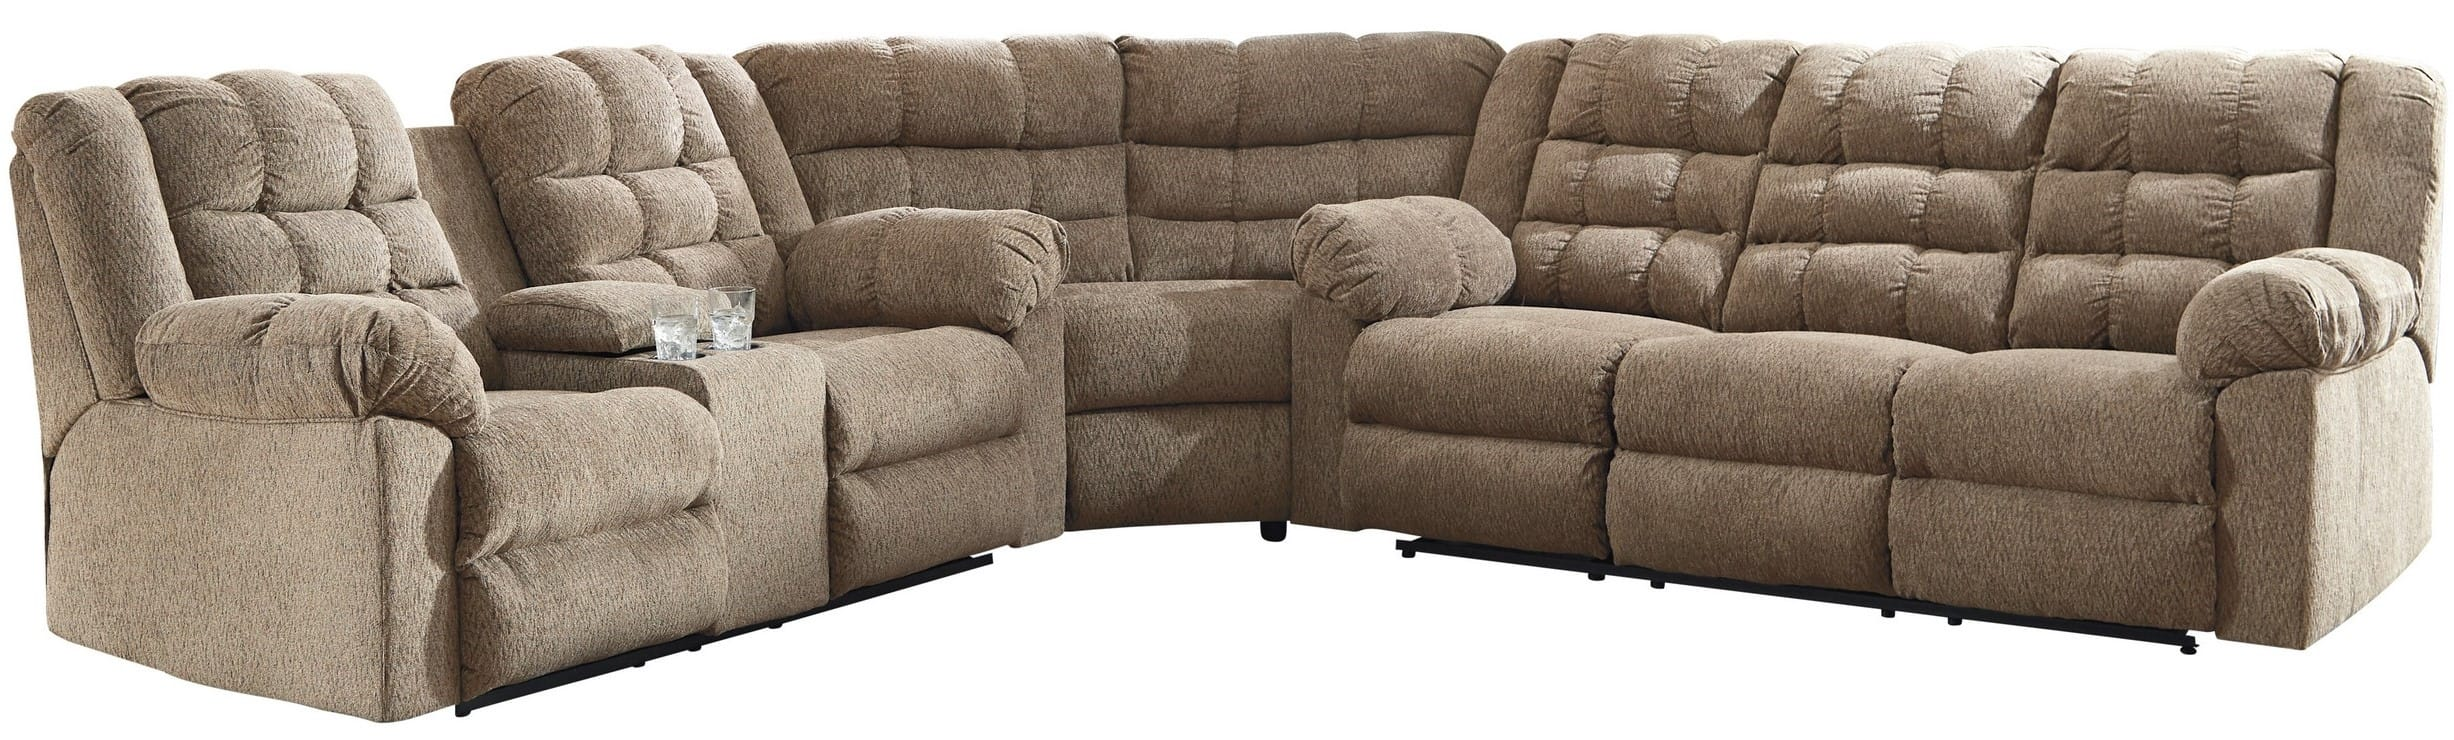 Signature Design By Ashley Workhorse Cocoa 3 Piece Sectional Sofa